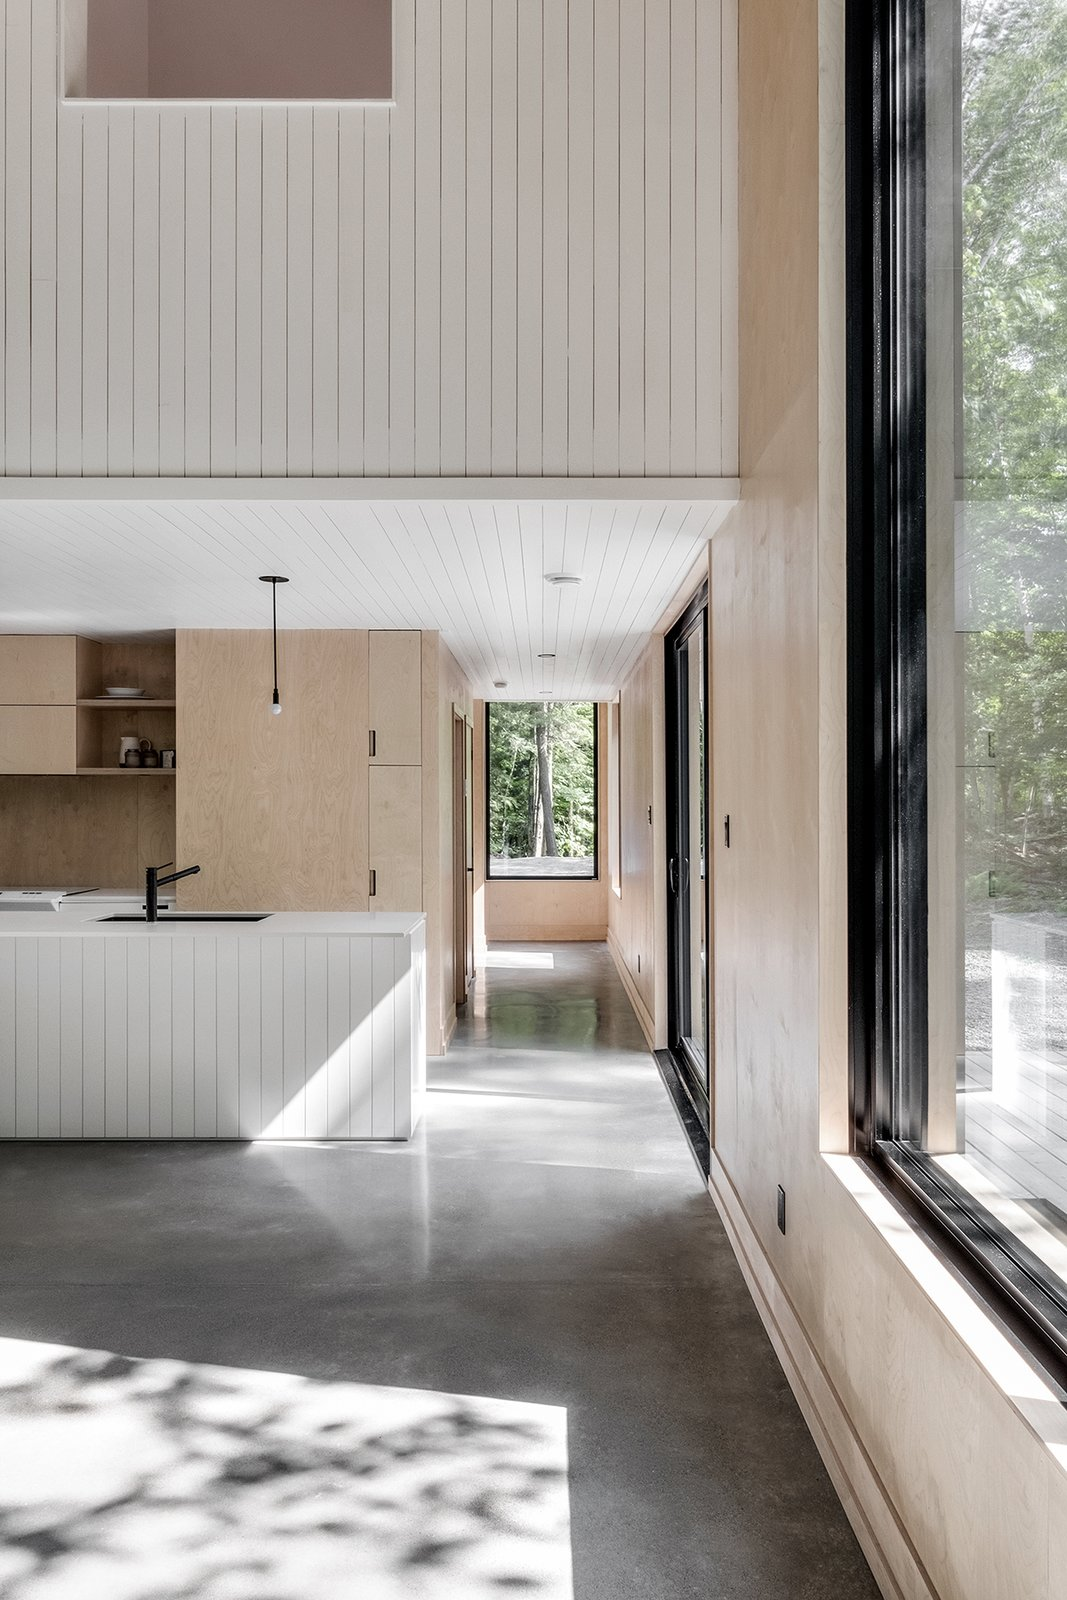 Hallway and Concrete Floor  Photo 7 of 17 in A Lofty Nature Retreat in Quebec Inspired by Nordic Architecture